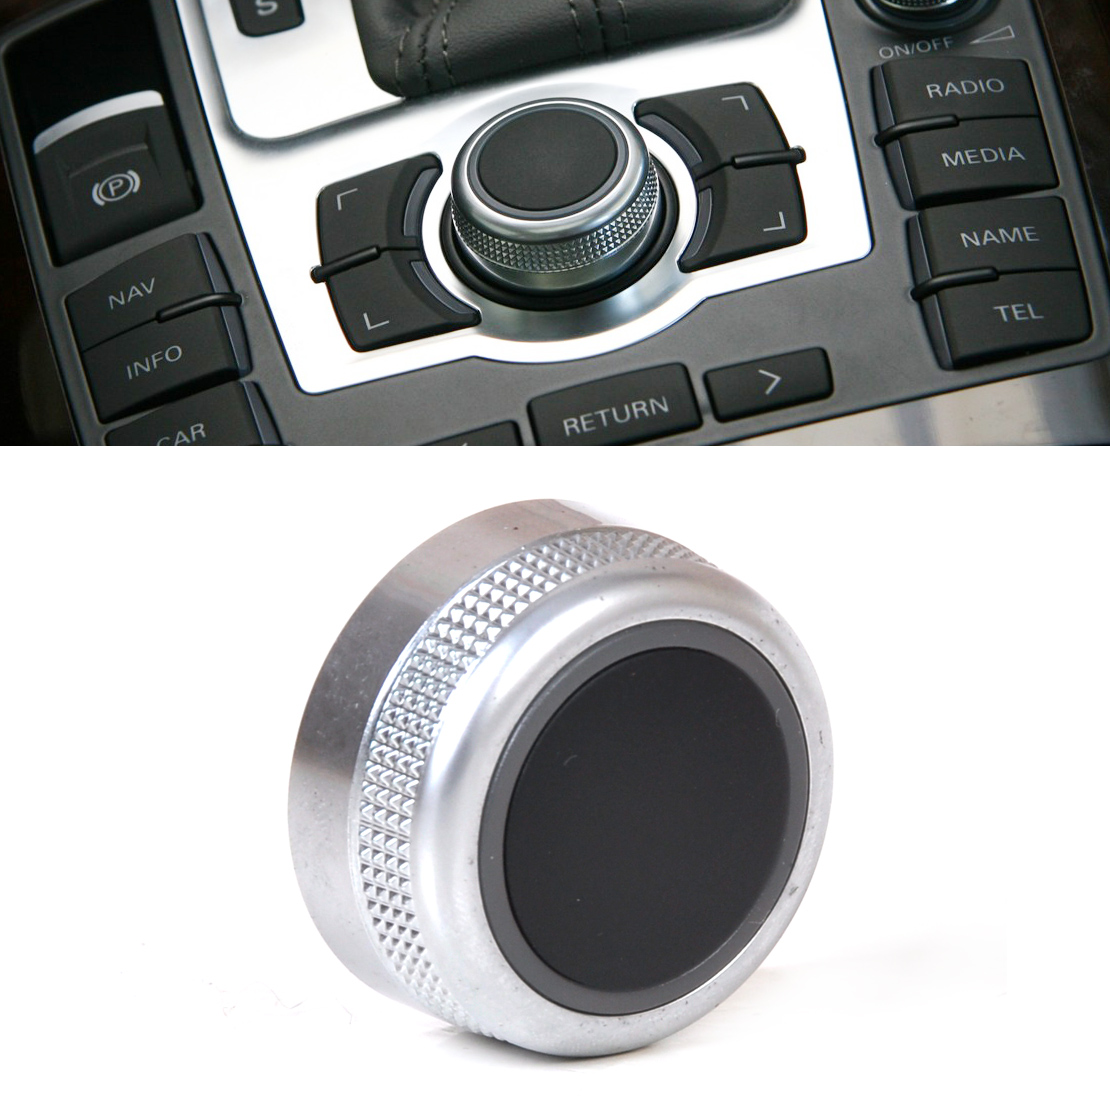 CITALL 4F0919069 Chrome Multimedia MMI Main Menu Control Rotary Switch Knob Cap Cover For Audi A6 A8 S6 S8 Q7 RS6 2004~2010 2011 radiator cooling fan relay control module for audi a6 c6 s6 4f0959501g 4f0959501c